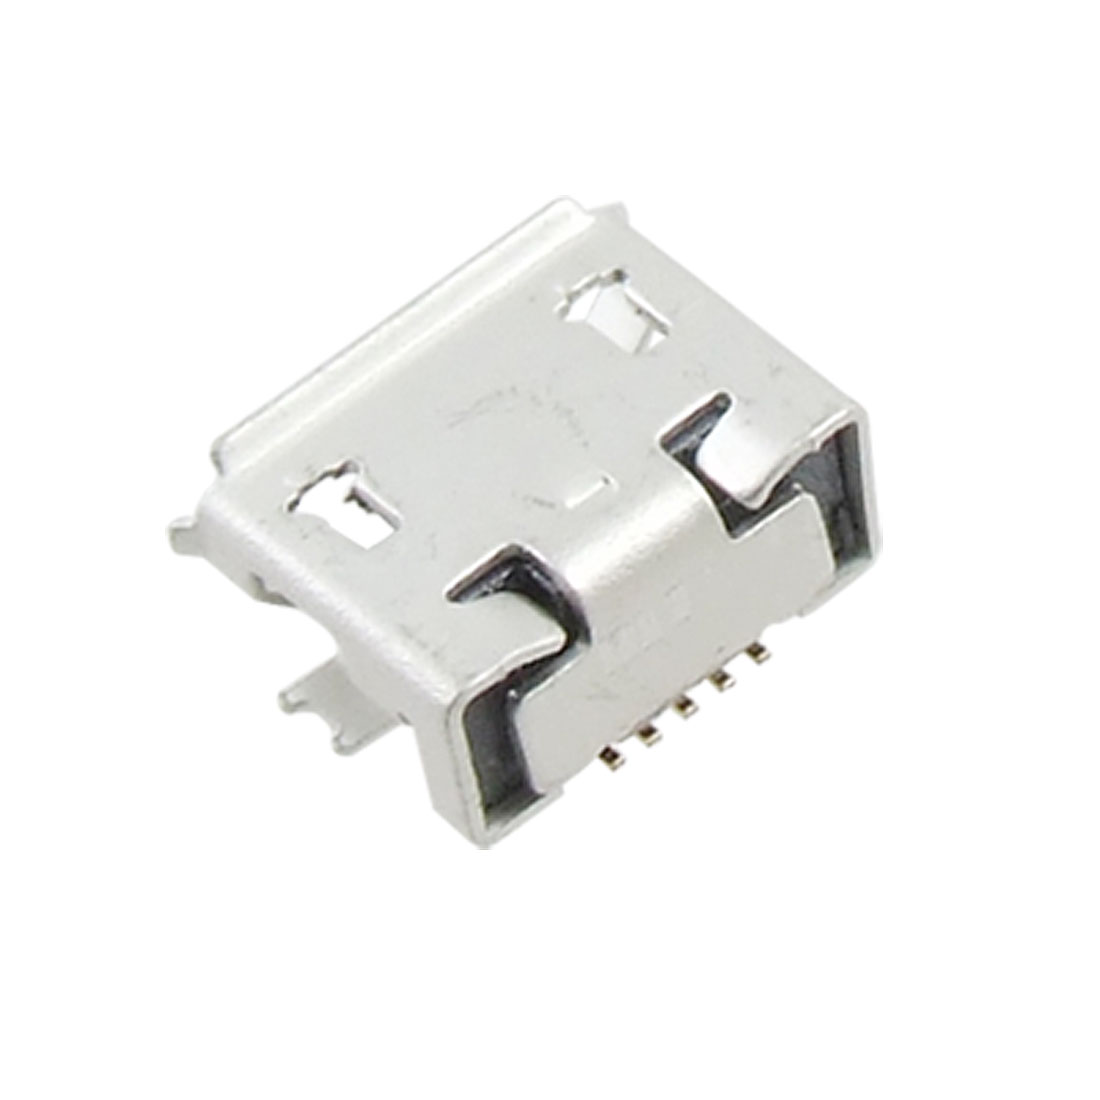 Inner Repair Parts USB Port Connector for Nokia N85